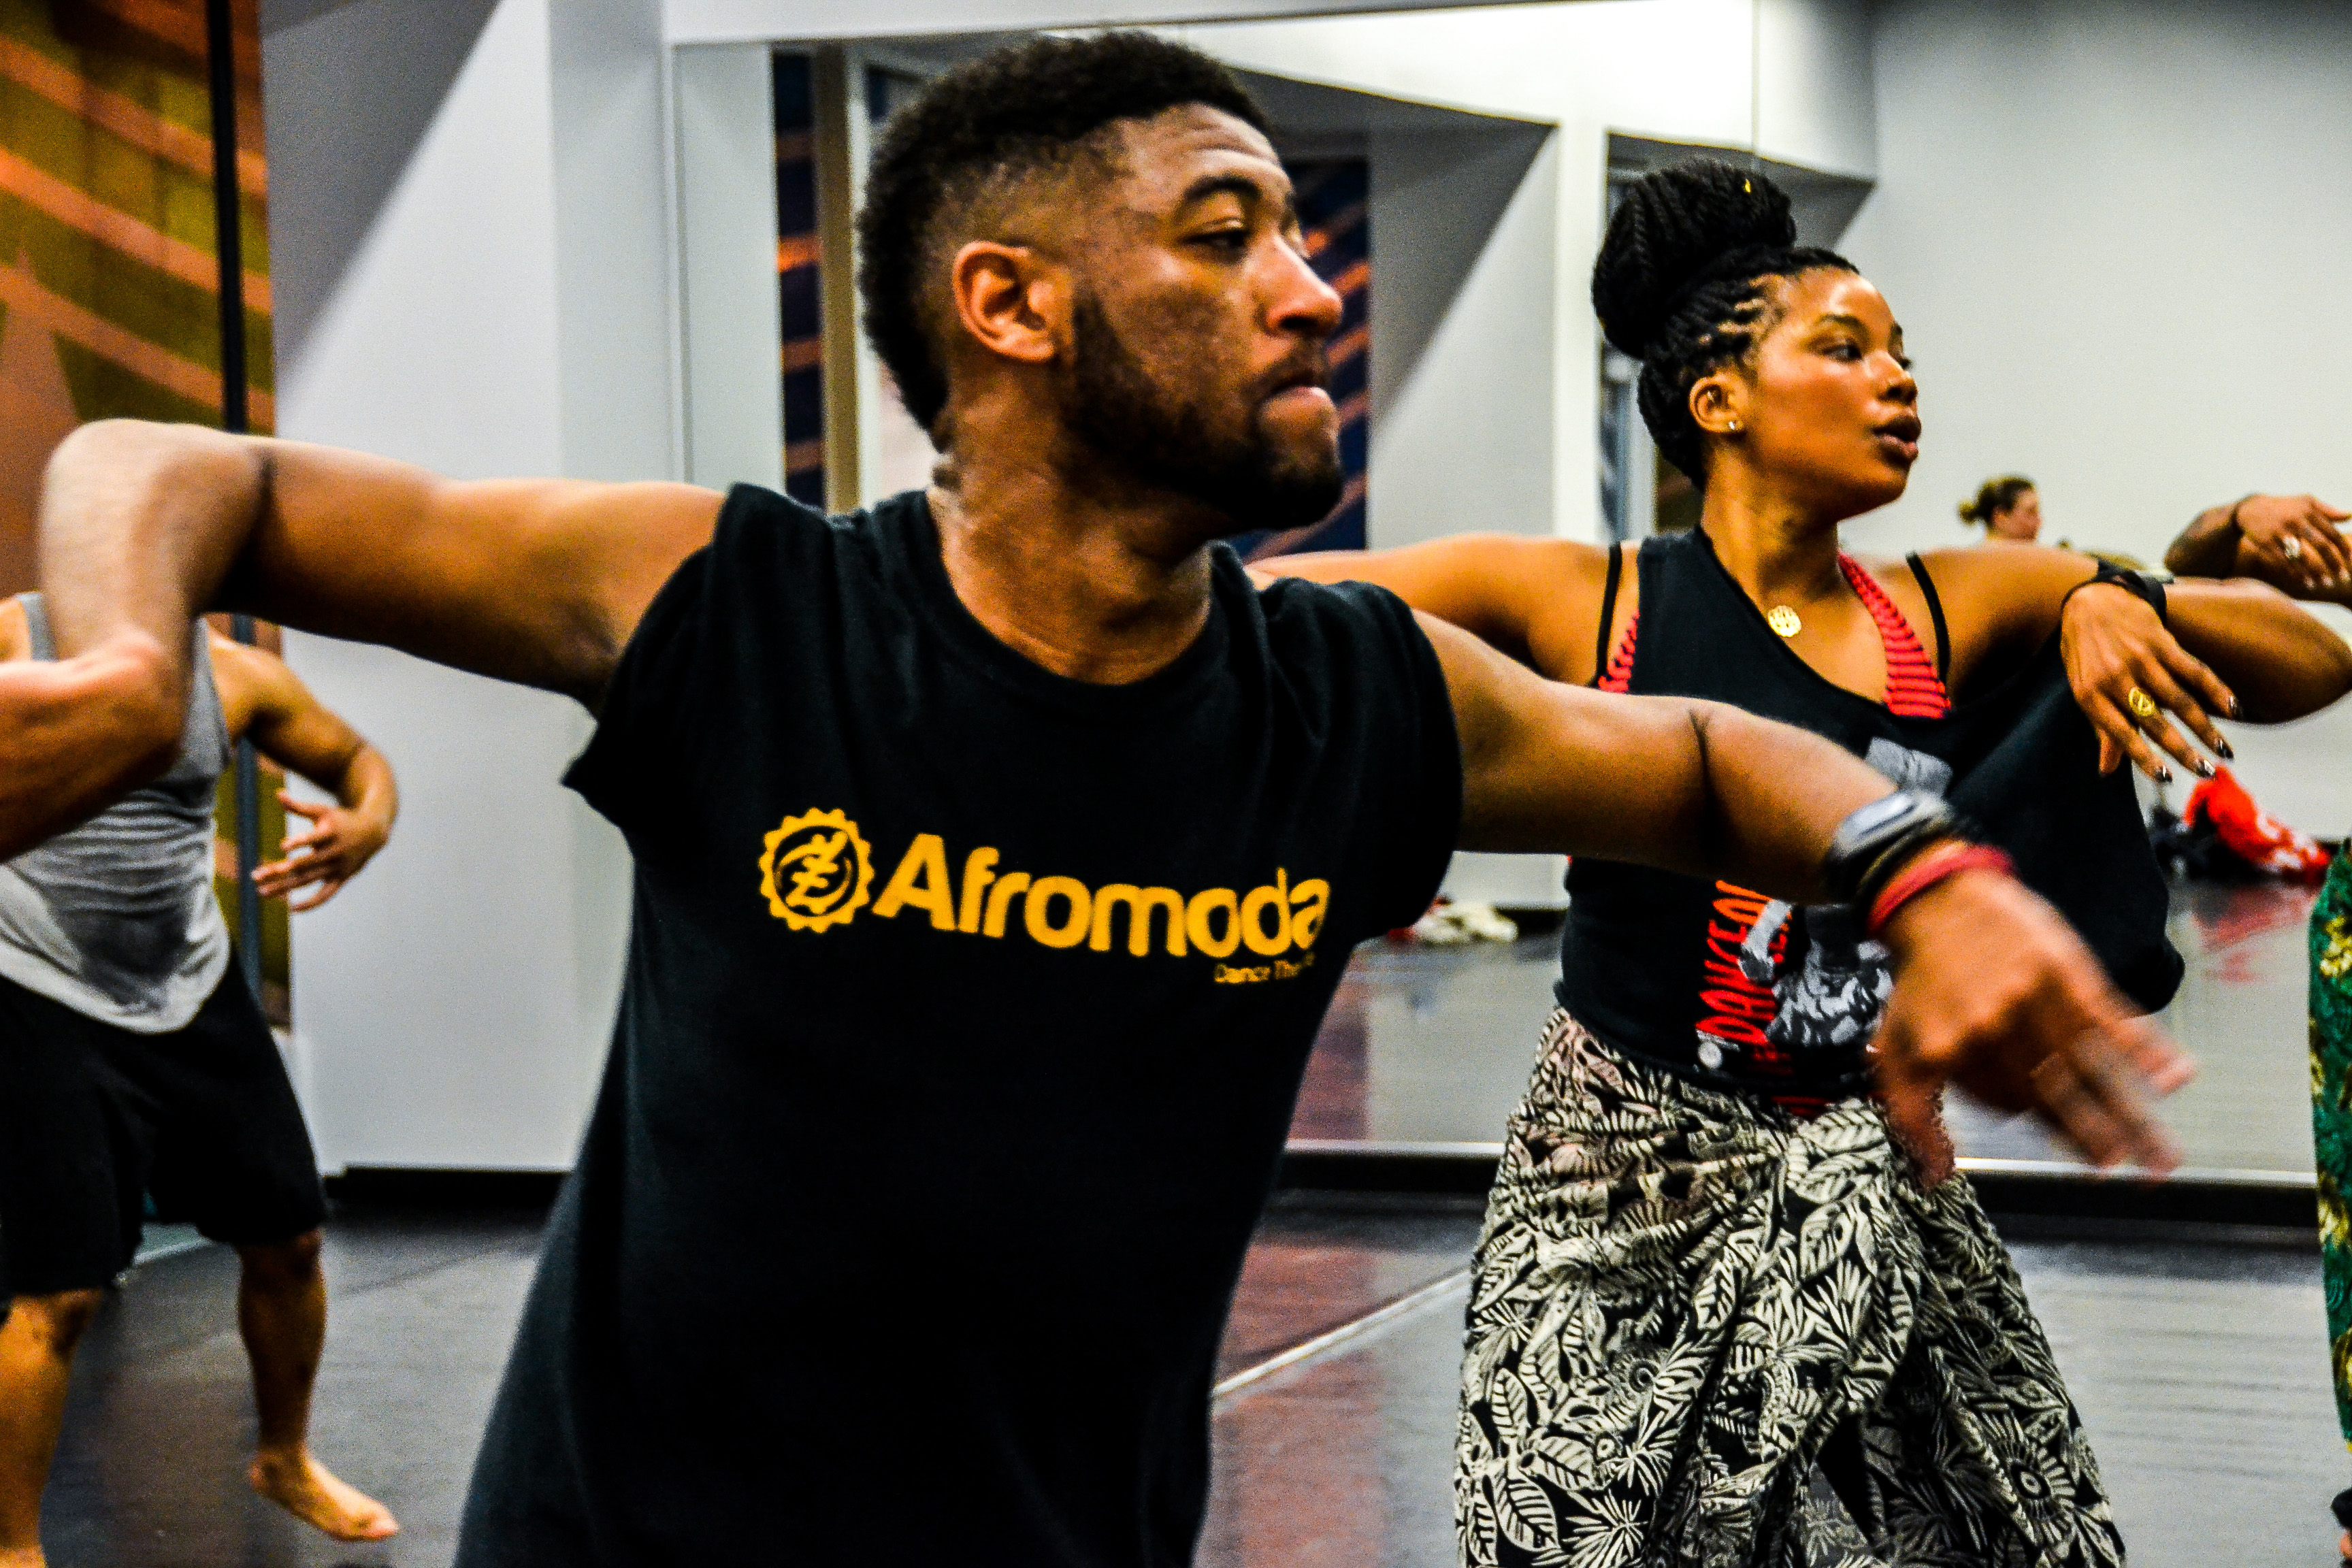 Bored with your routine? Shake things up with African dance